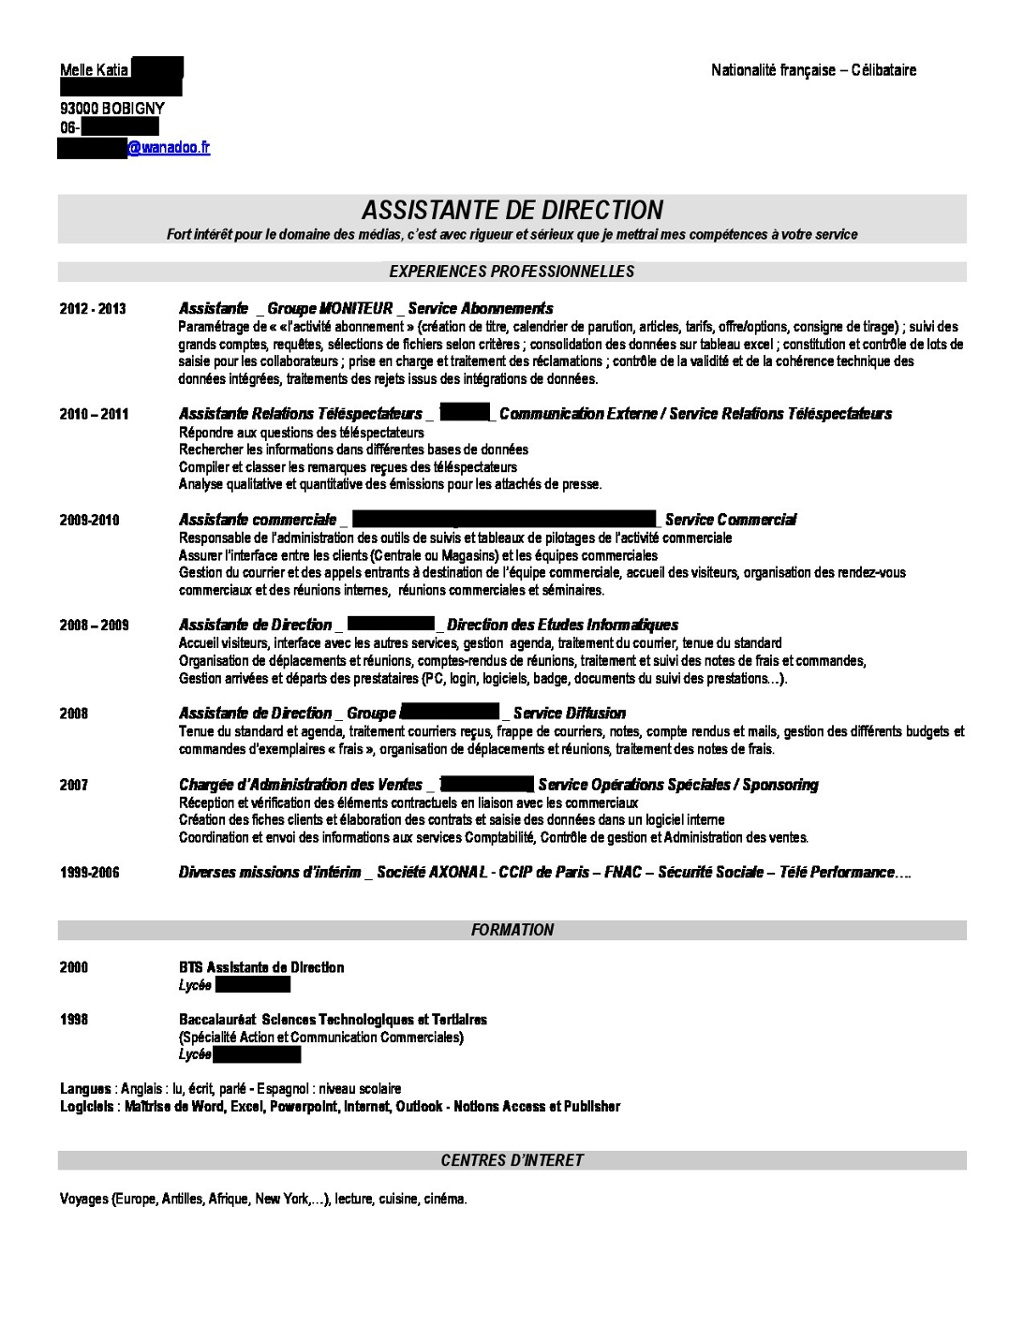 cv assistante de direction linkedin